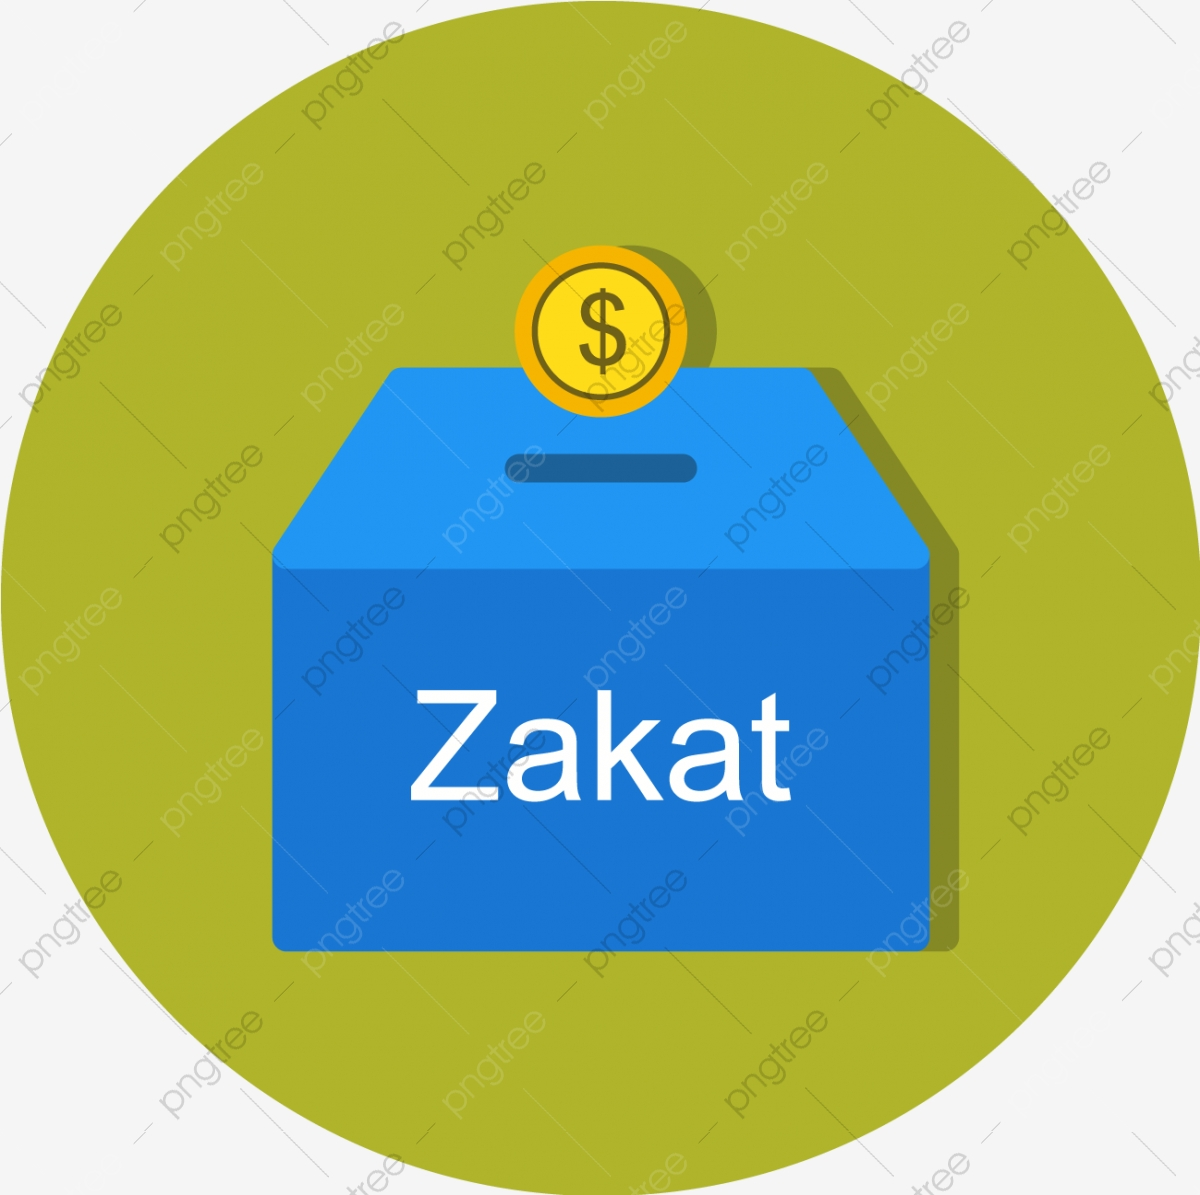 vector zakat icon donation islamic zakat png and vector with transparent background for free download https pngtree com freepng vector zakat icon 4162577 html